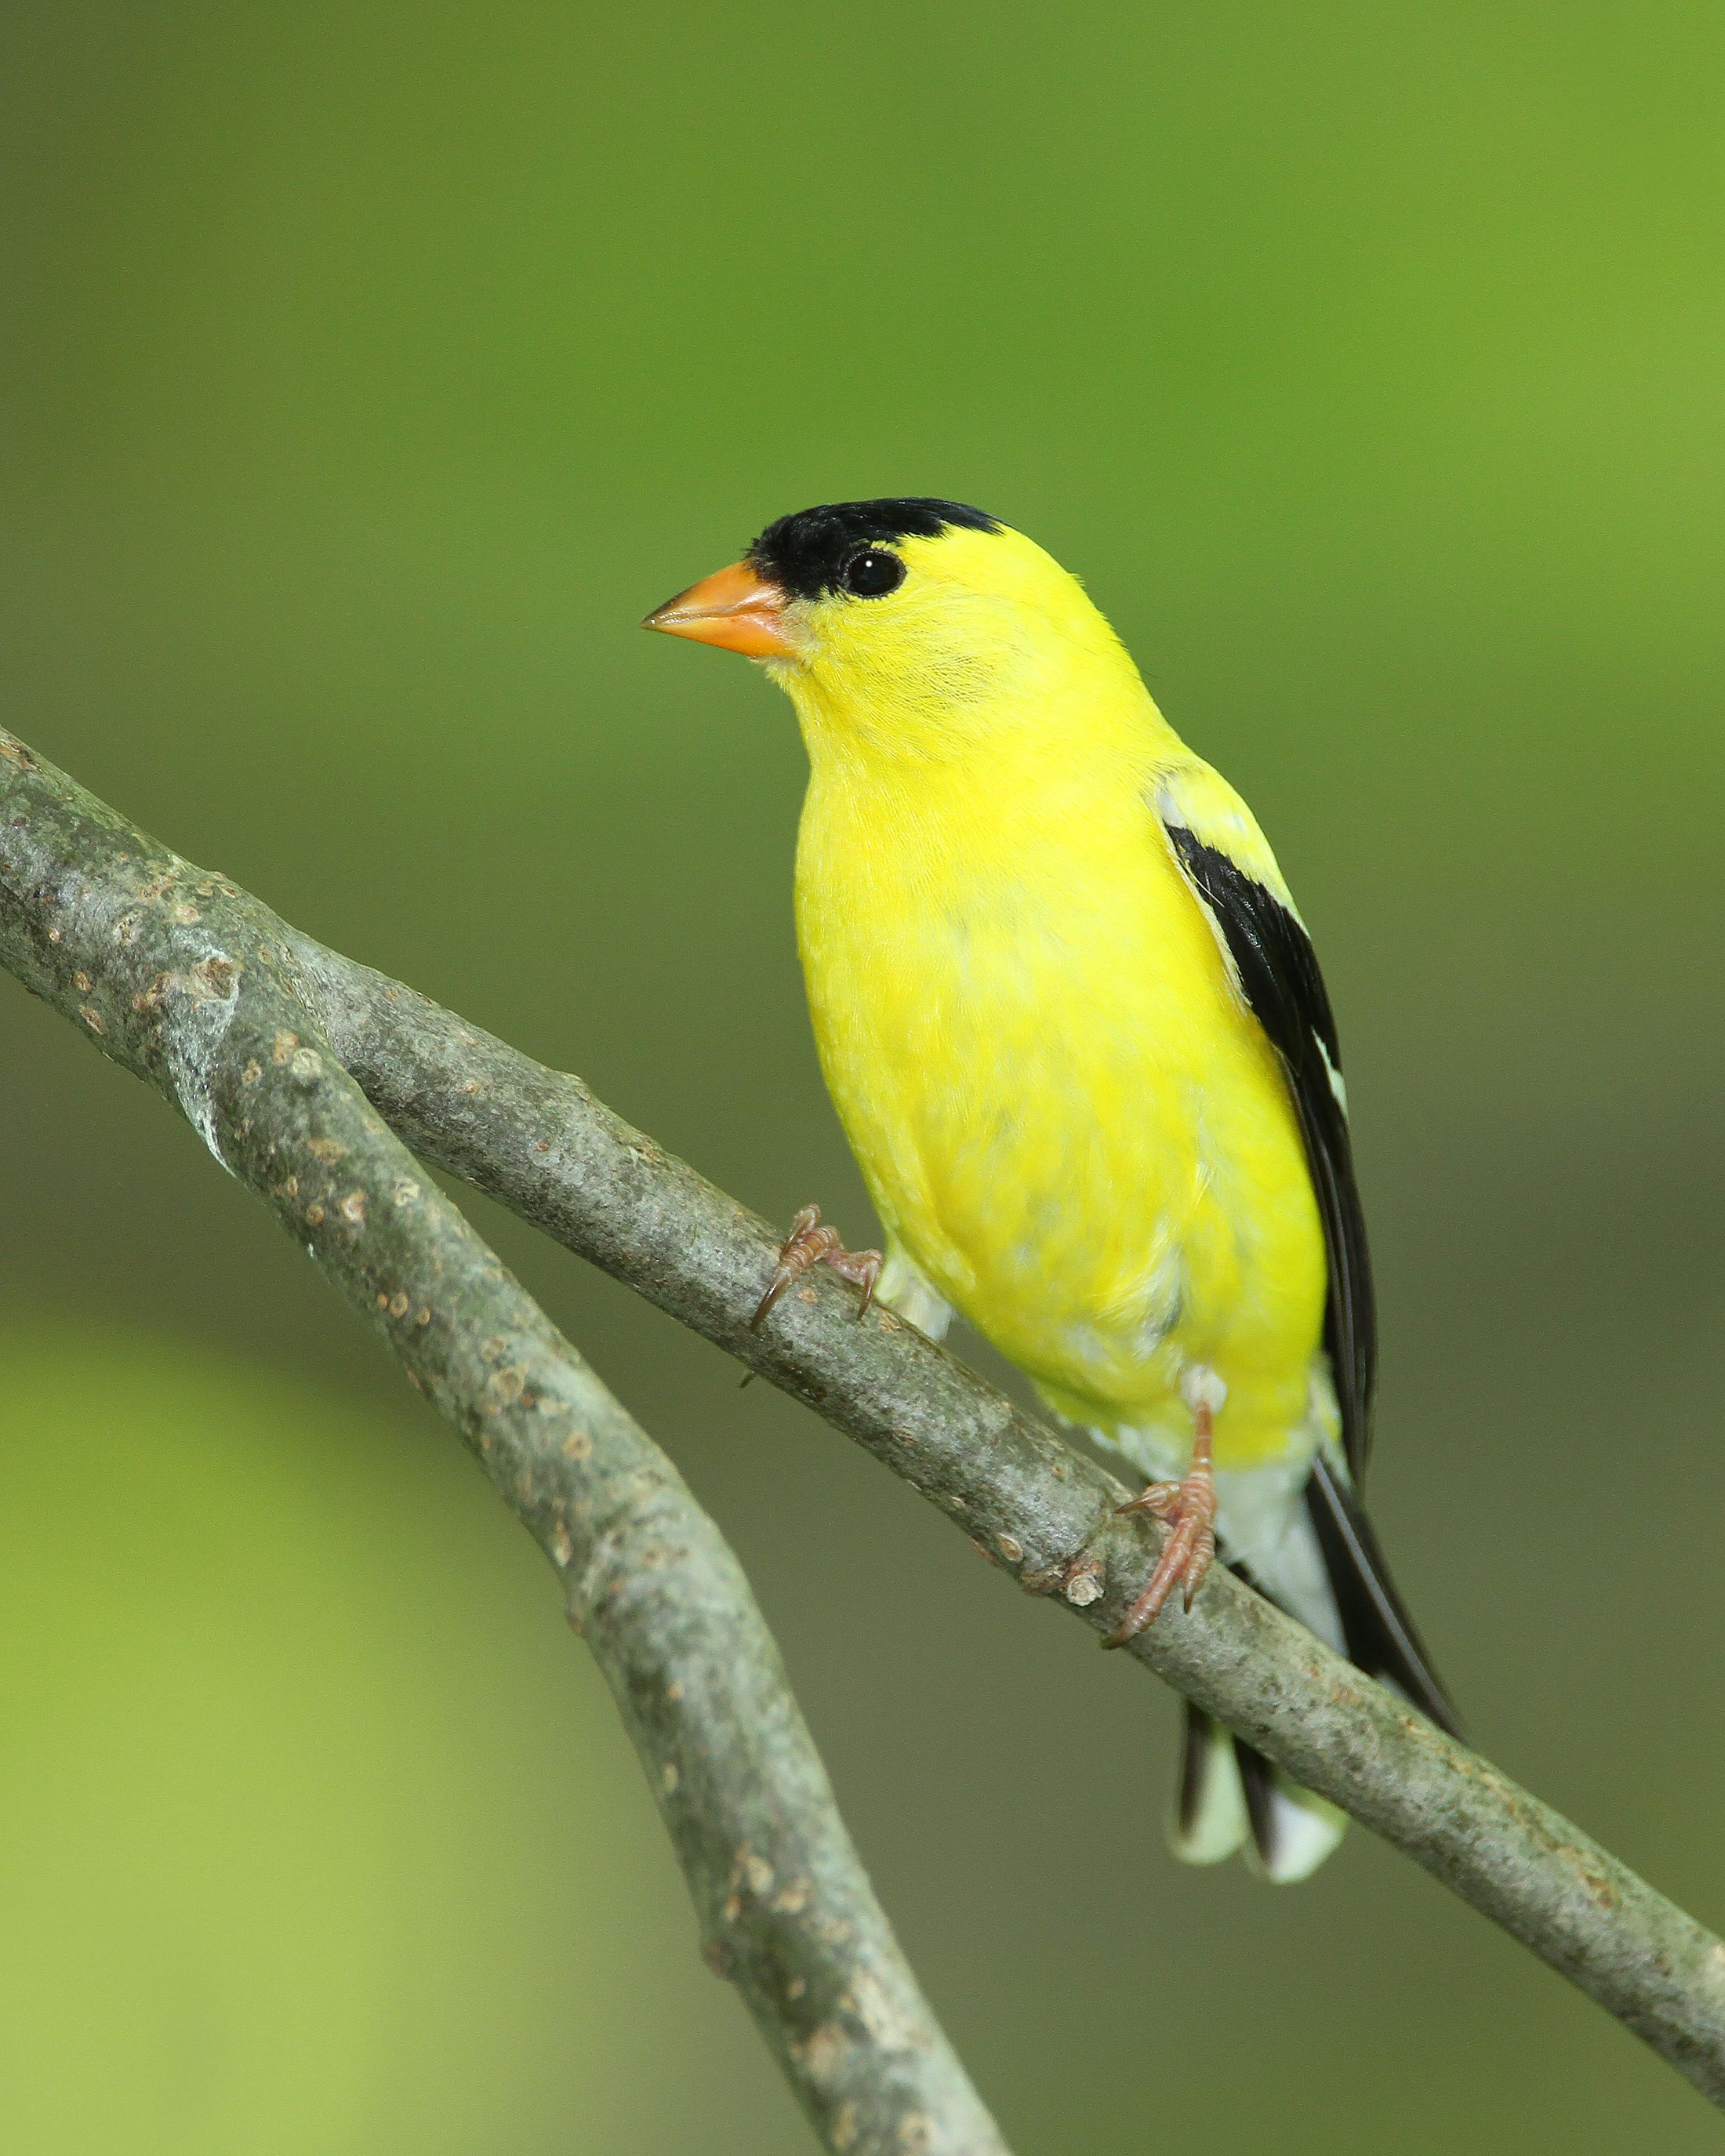 A bright yellow American goldfinch resting on a tree branch.